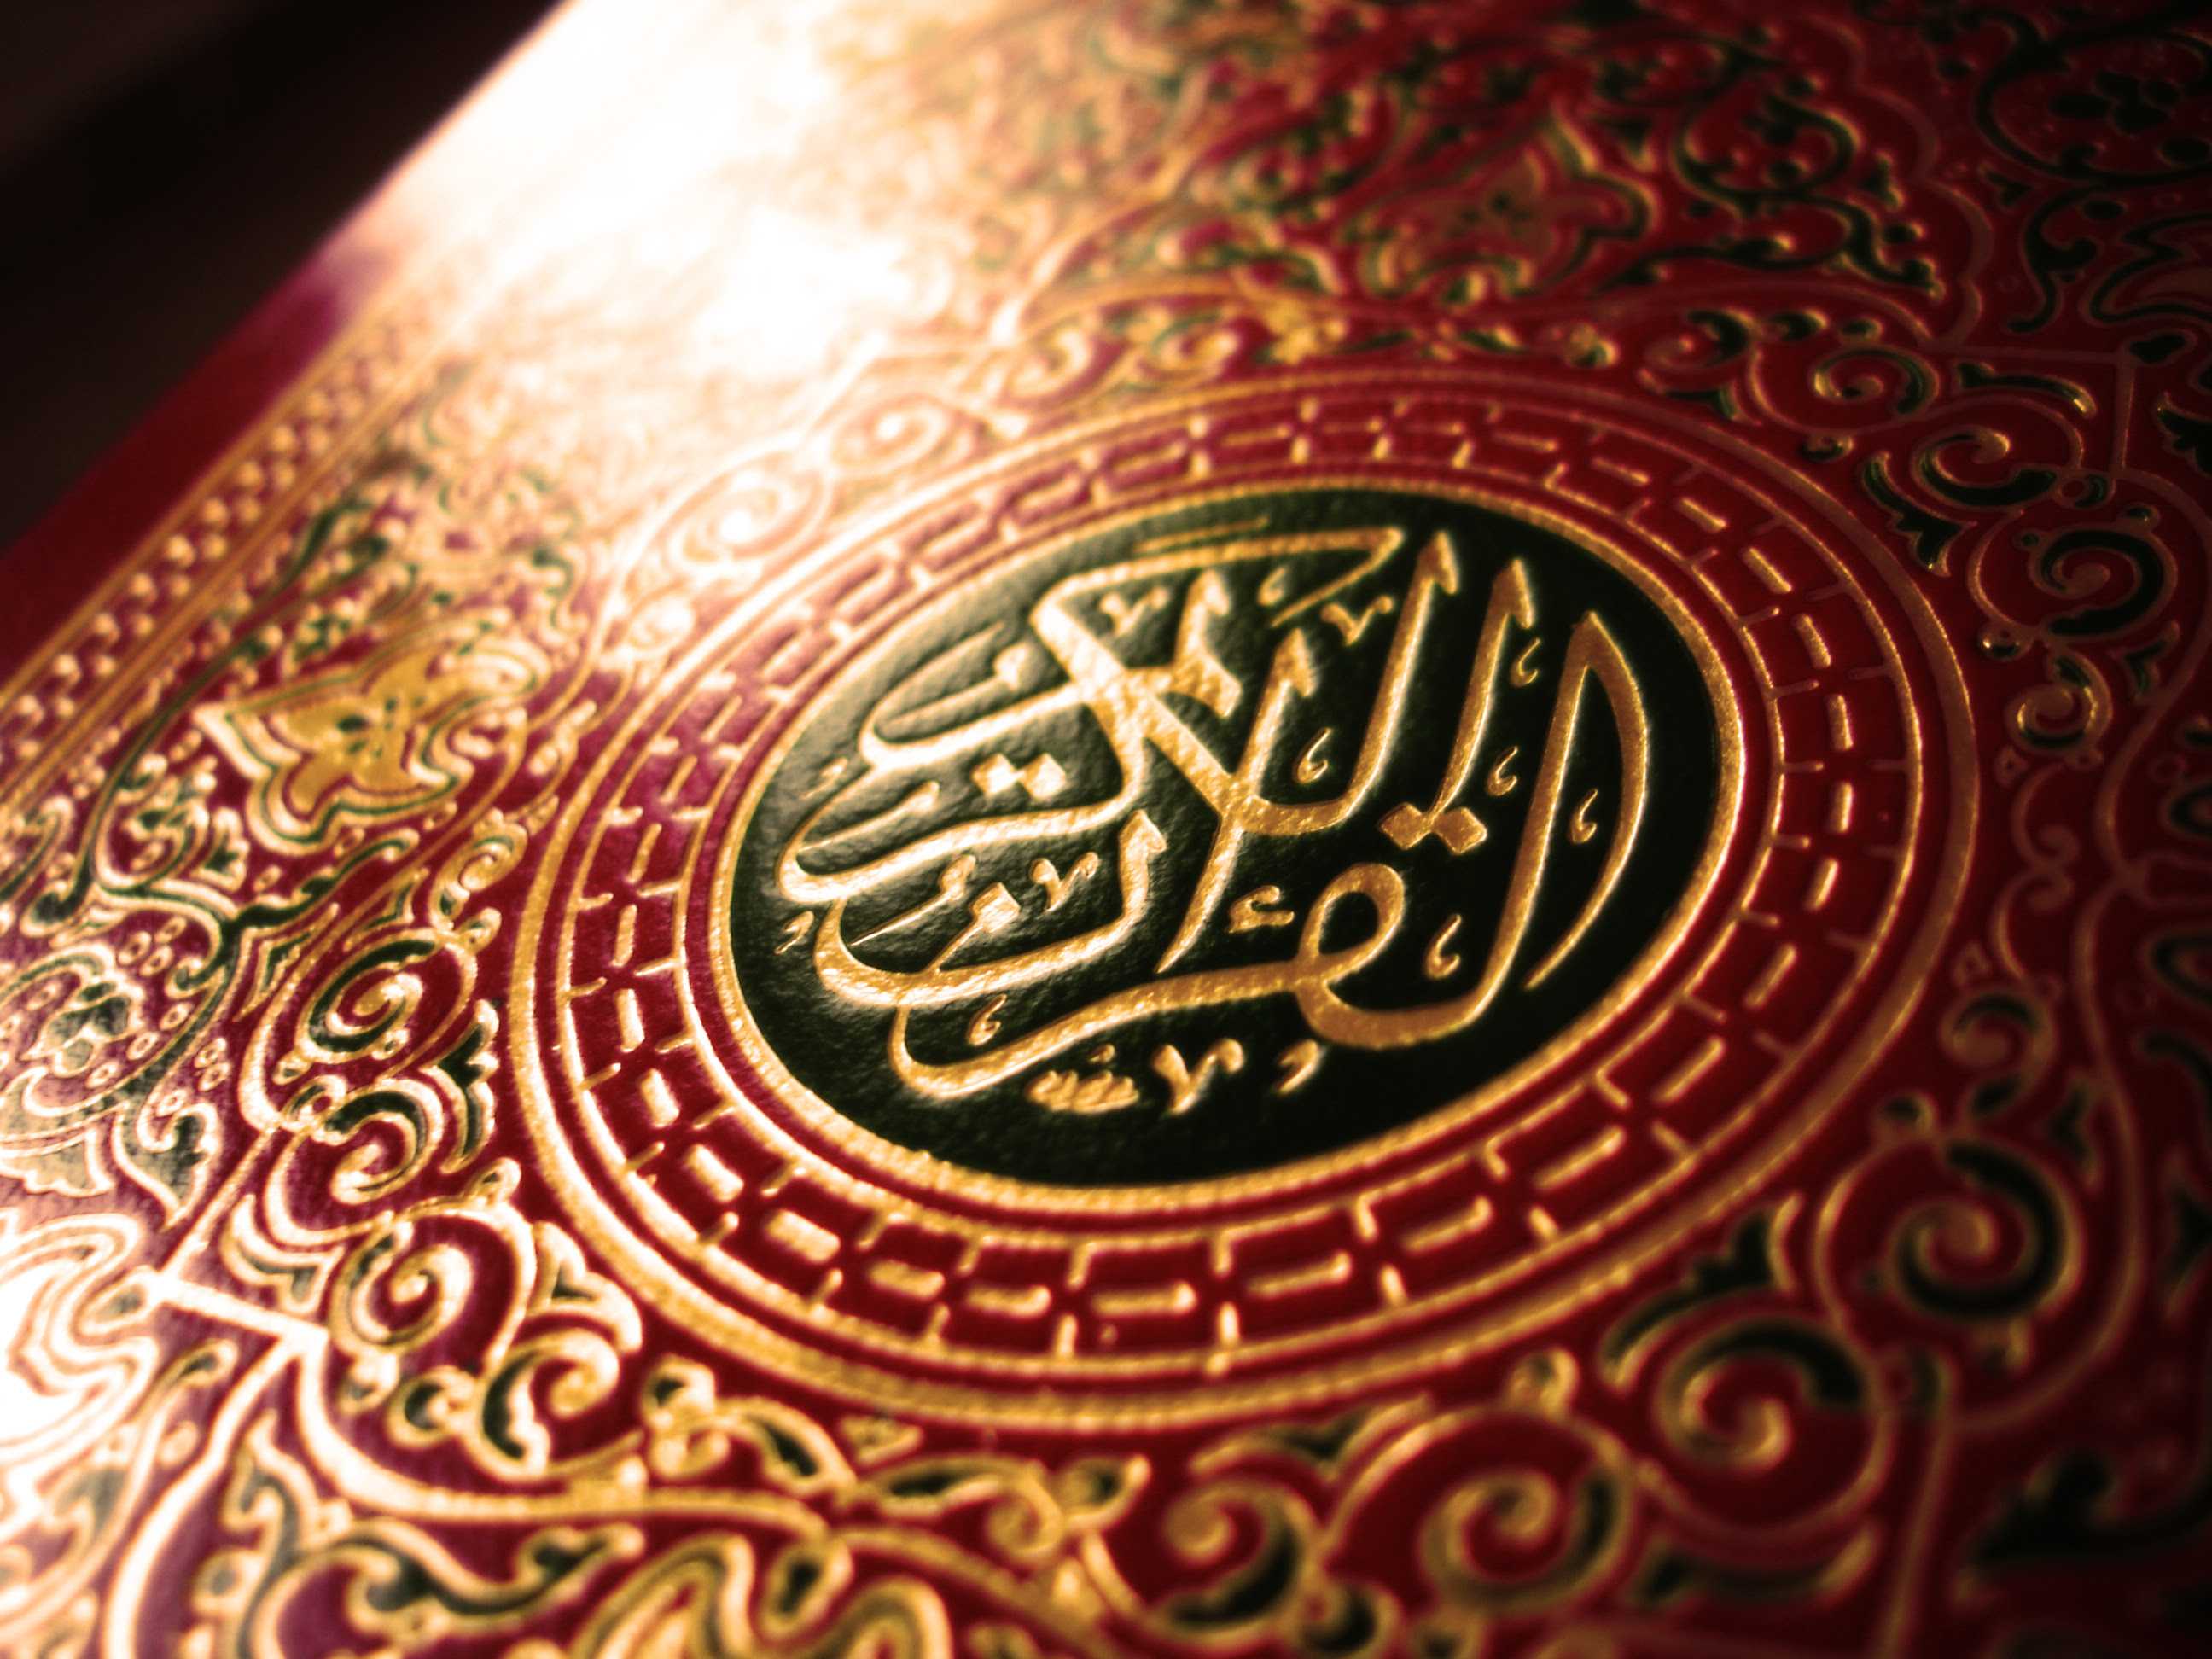 http://upload.wikimedia.org/wikipedia/commons/c/c3/Quran_cover.jpg